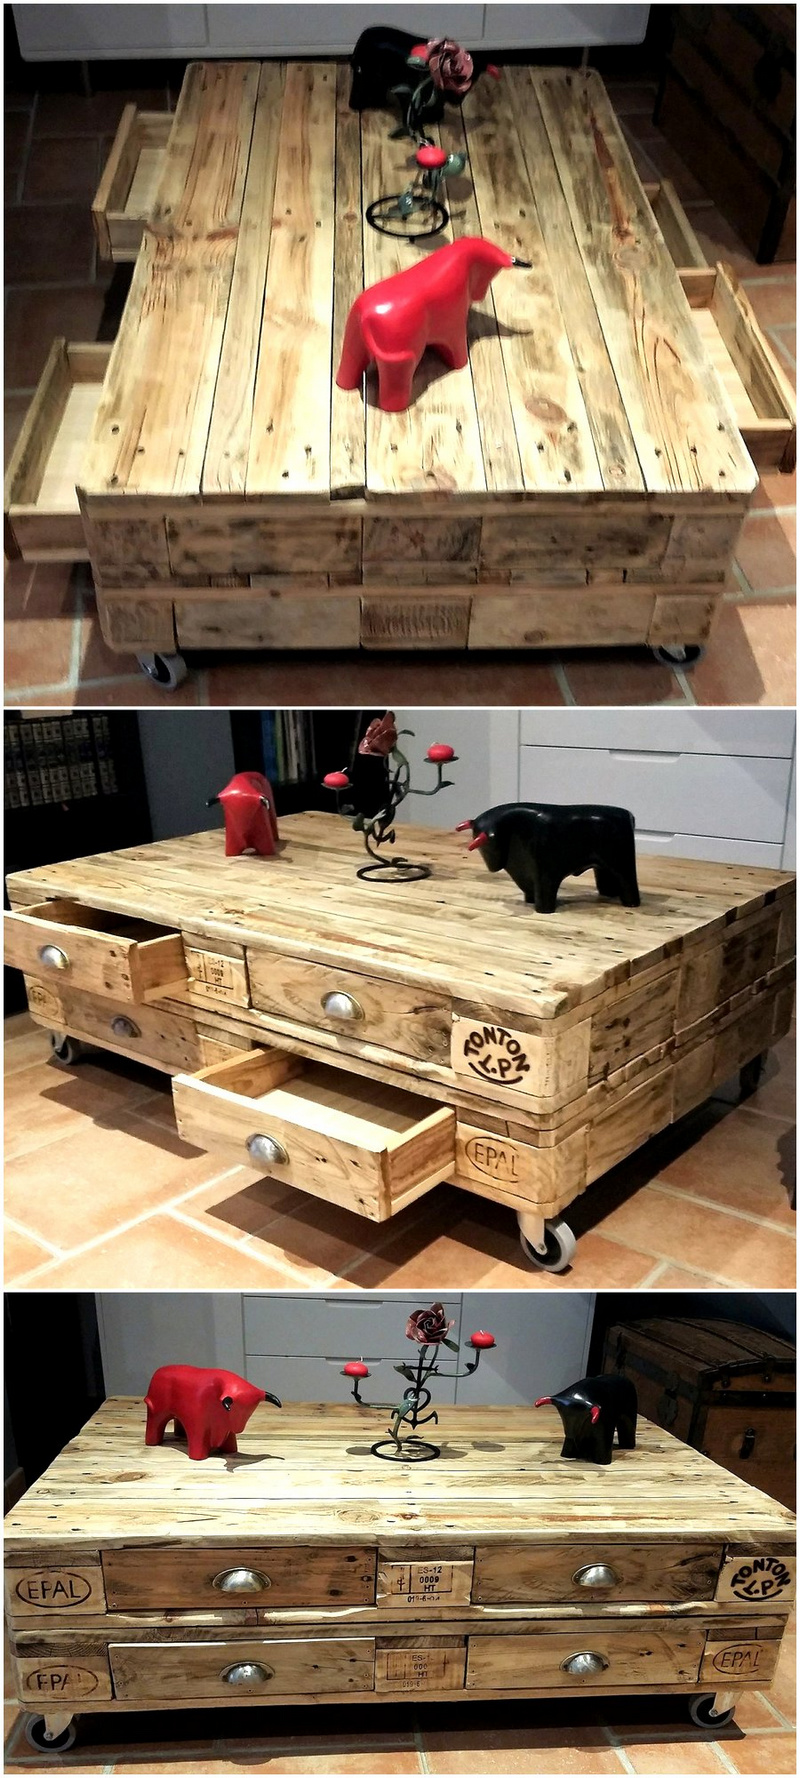 50 Cool Ideas for Wood Pallets Upcycling | Page 4 | Wood ...